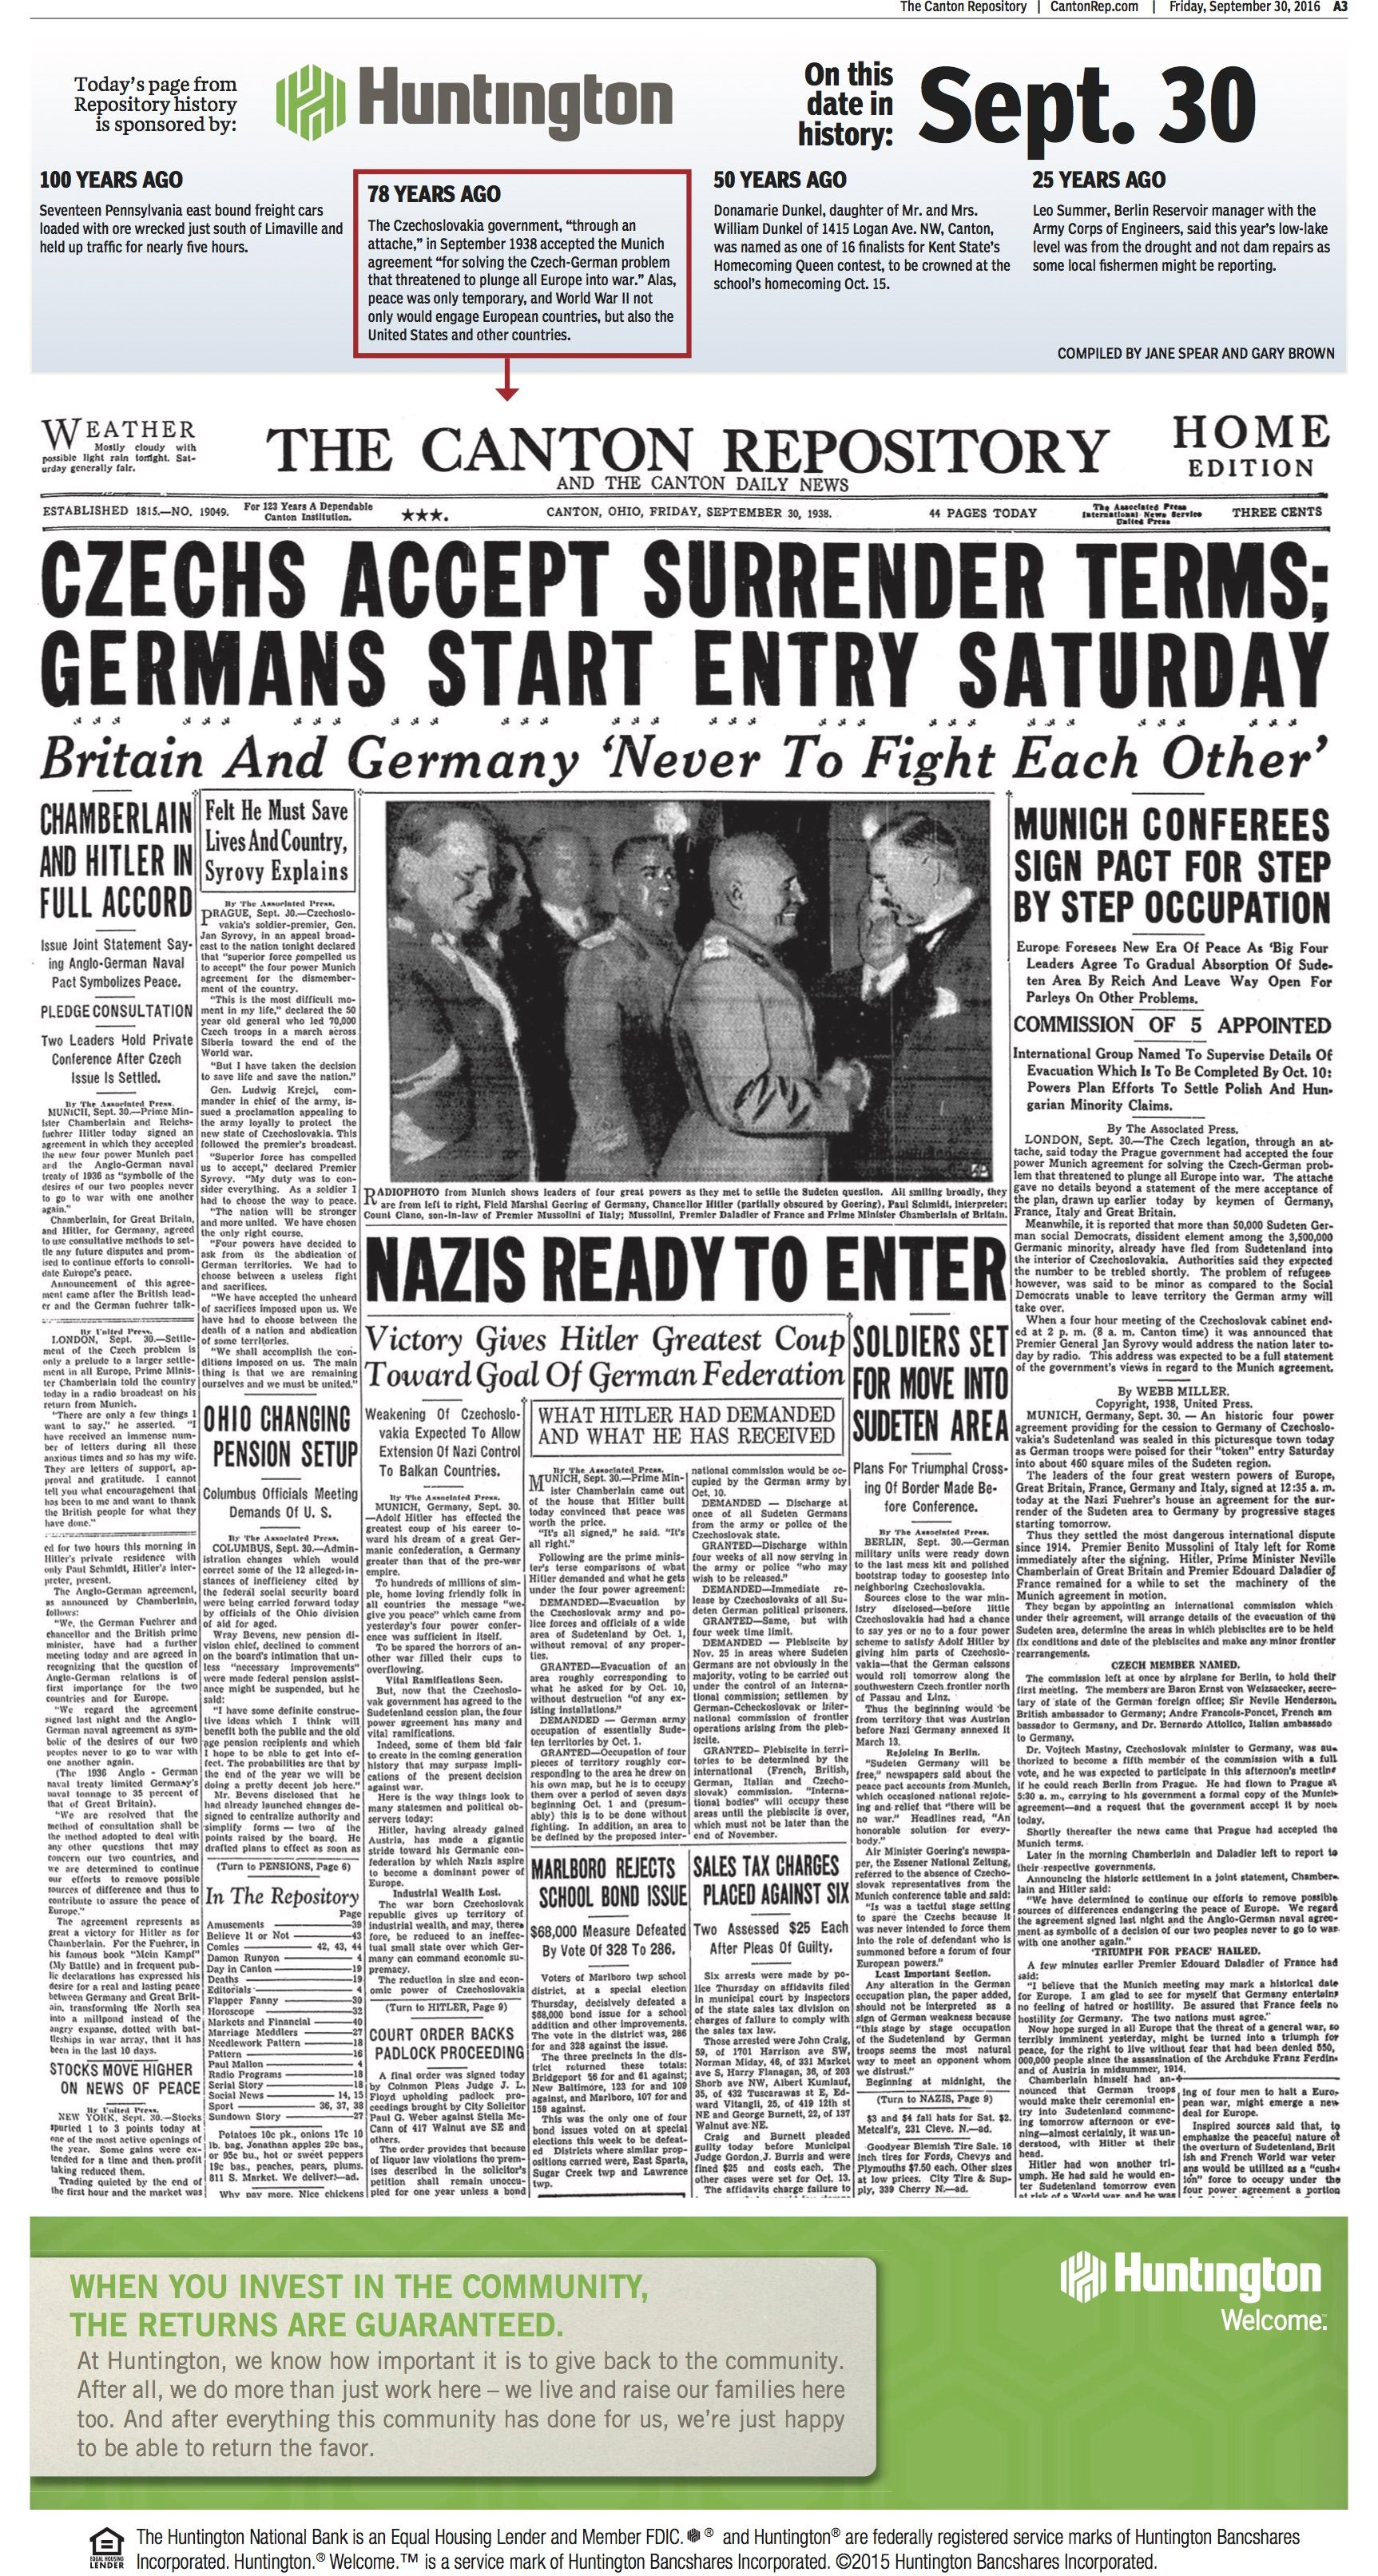 The Munich Agreement Between Germany And Czechoslovakia Was Front